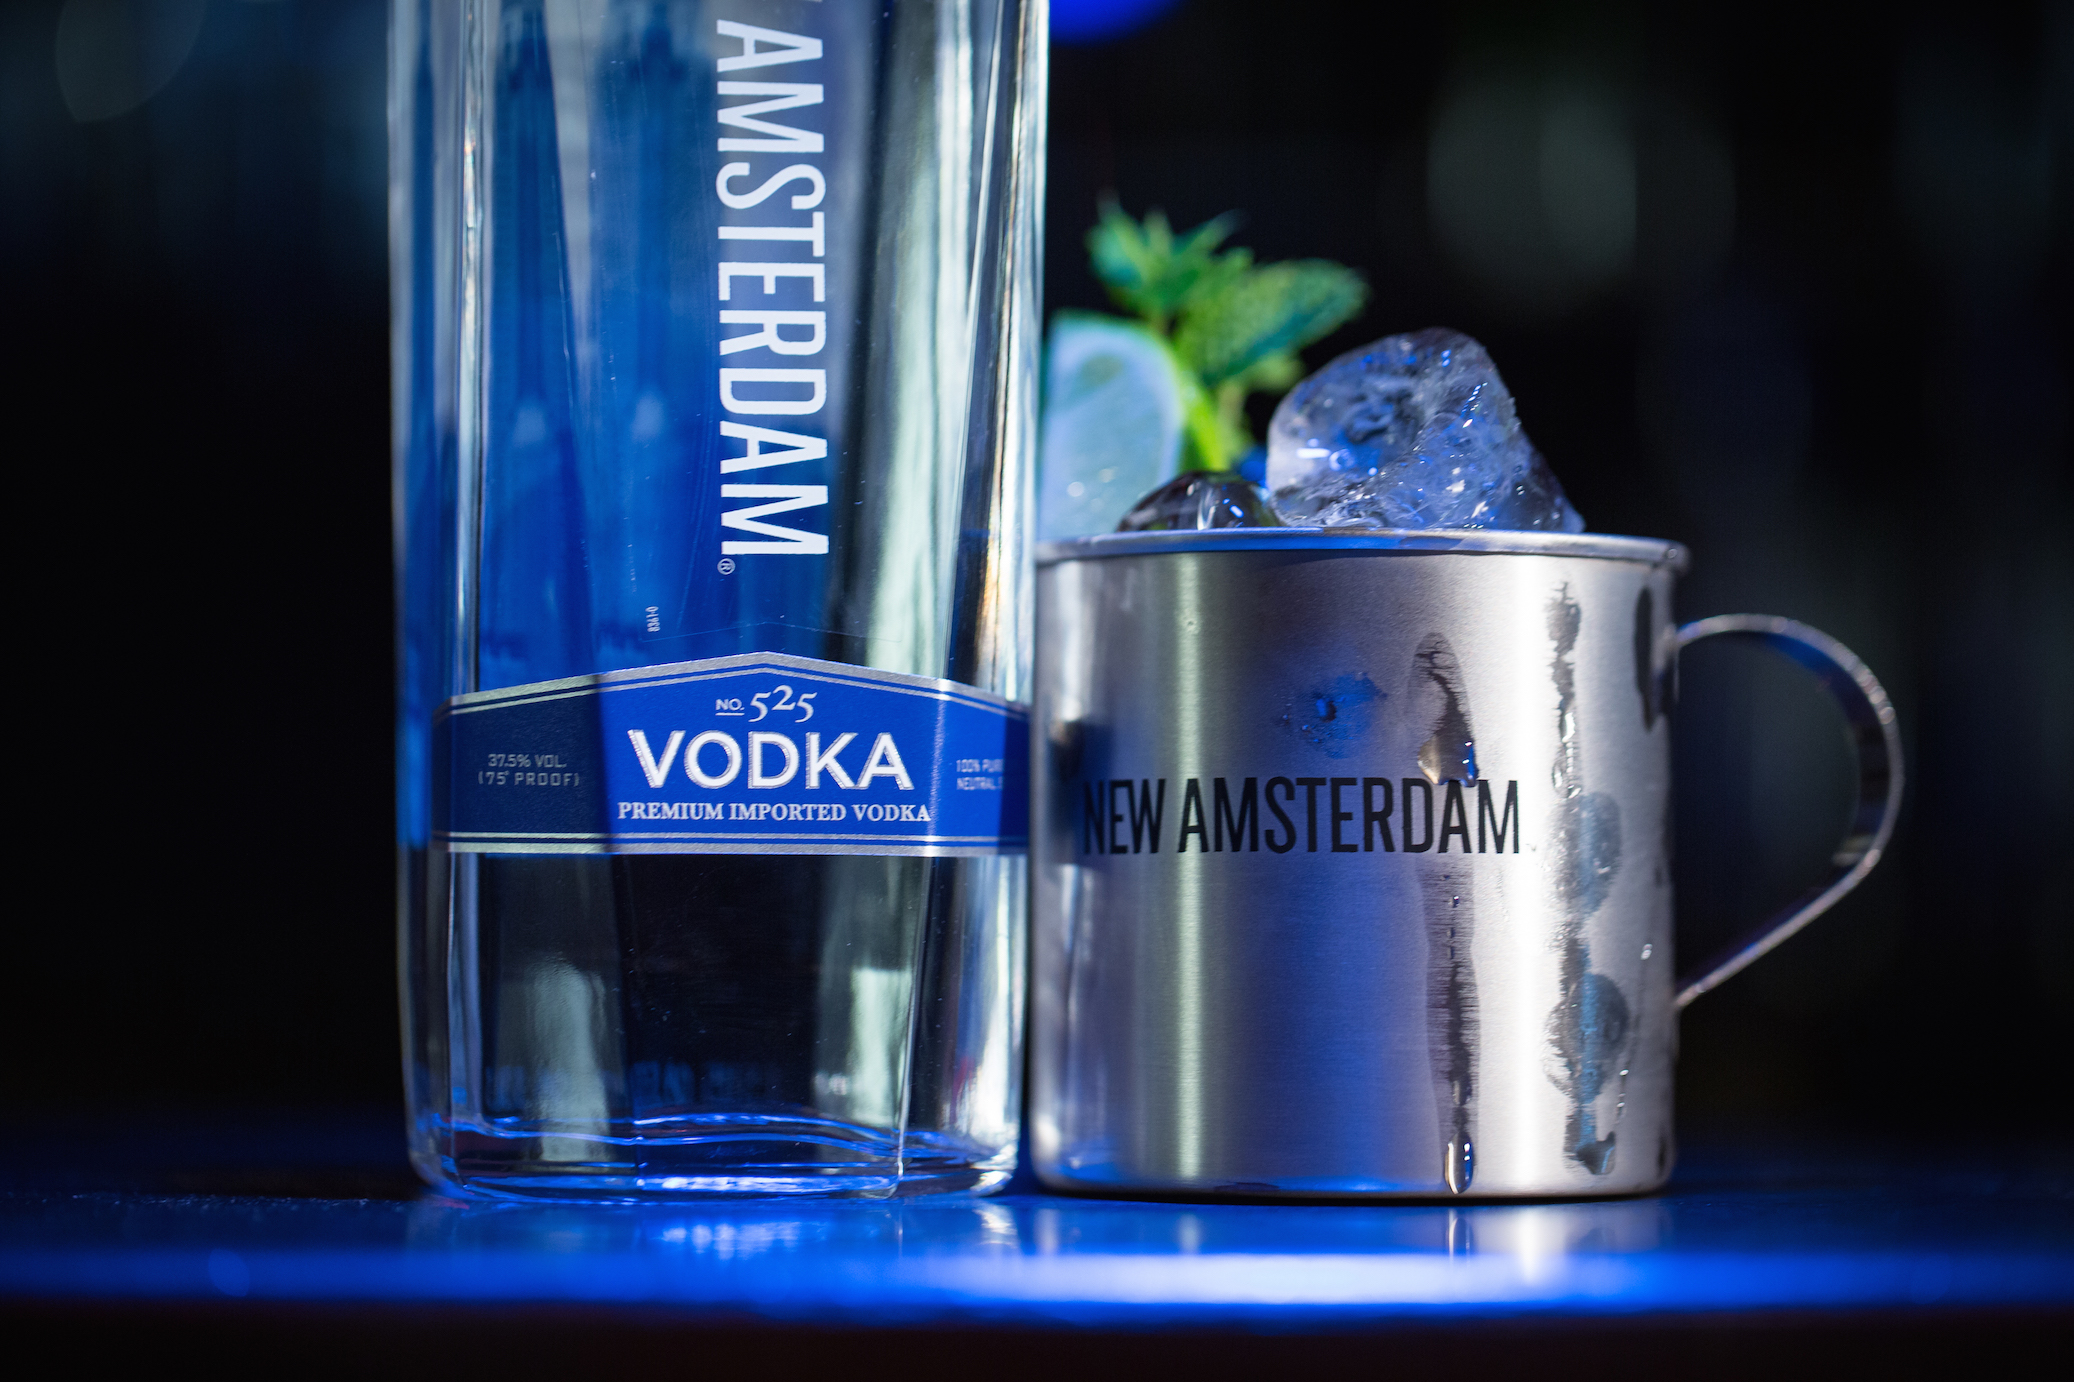 New Amsterdam Vodka - It's Your Town